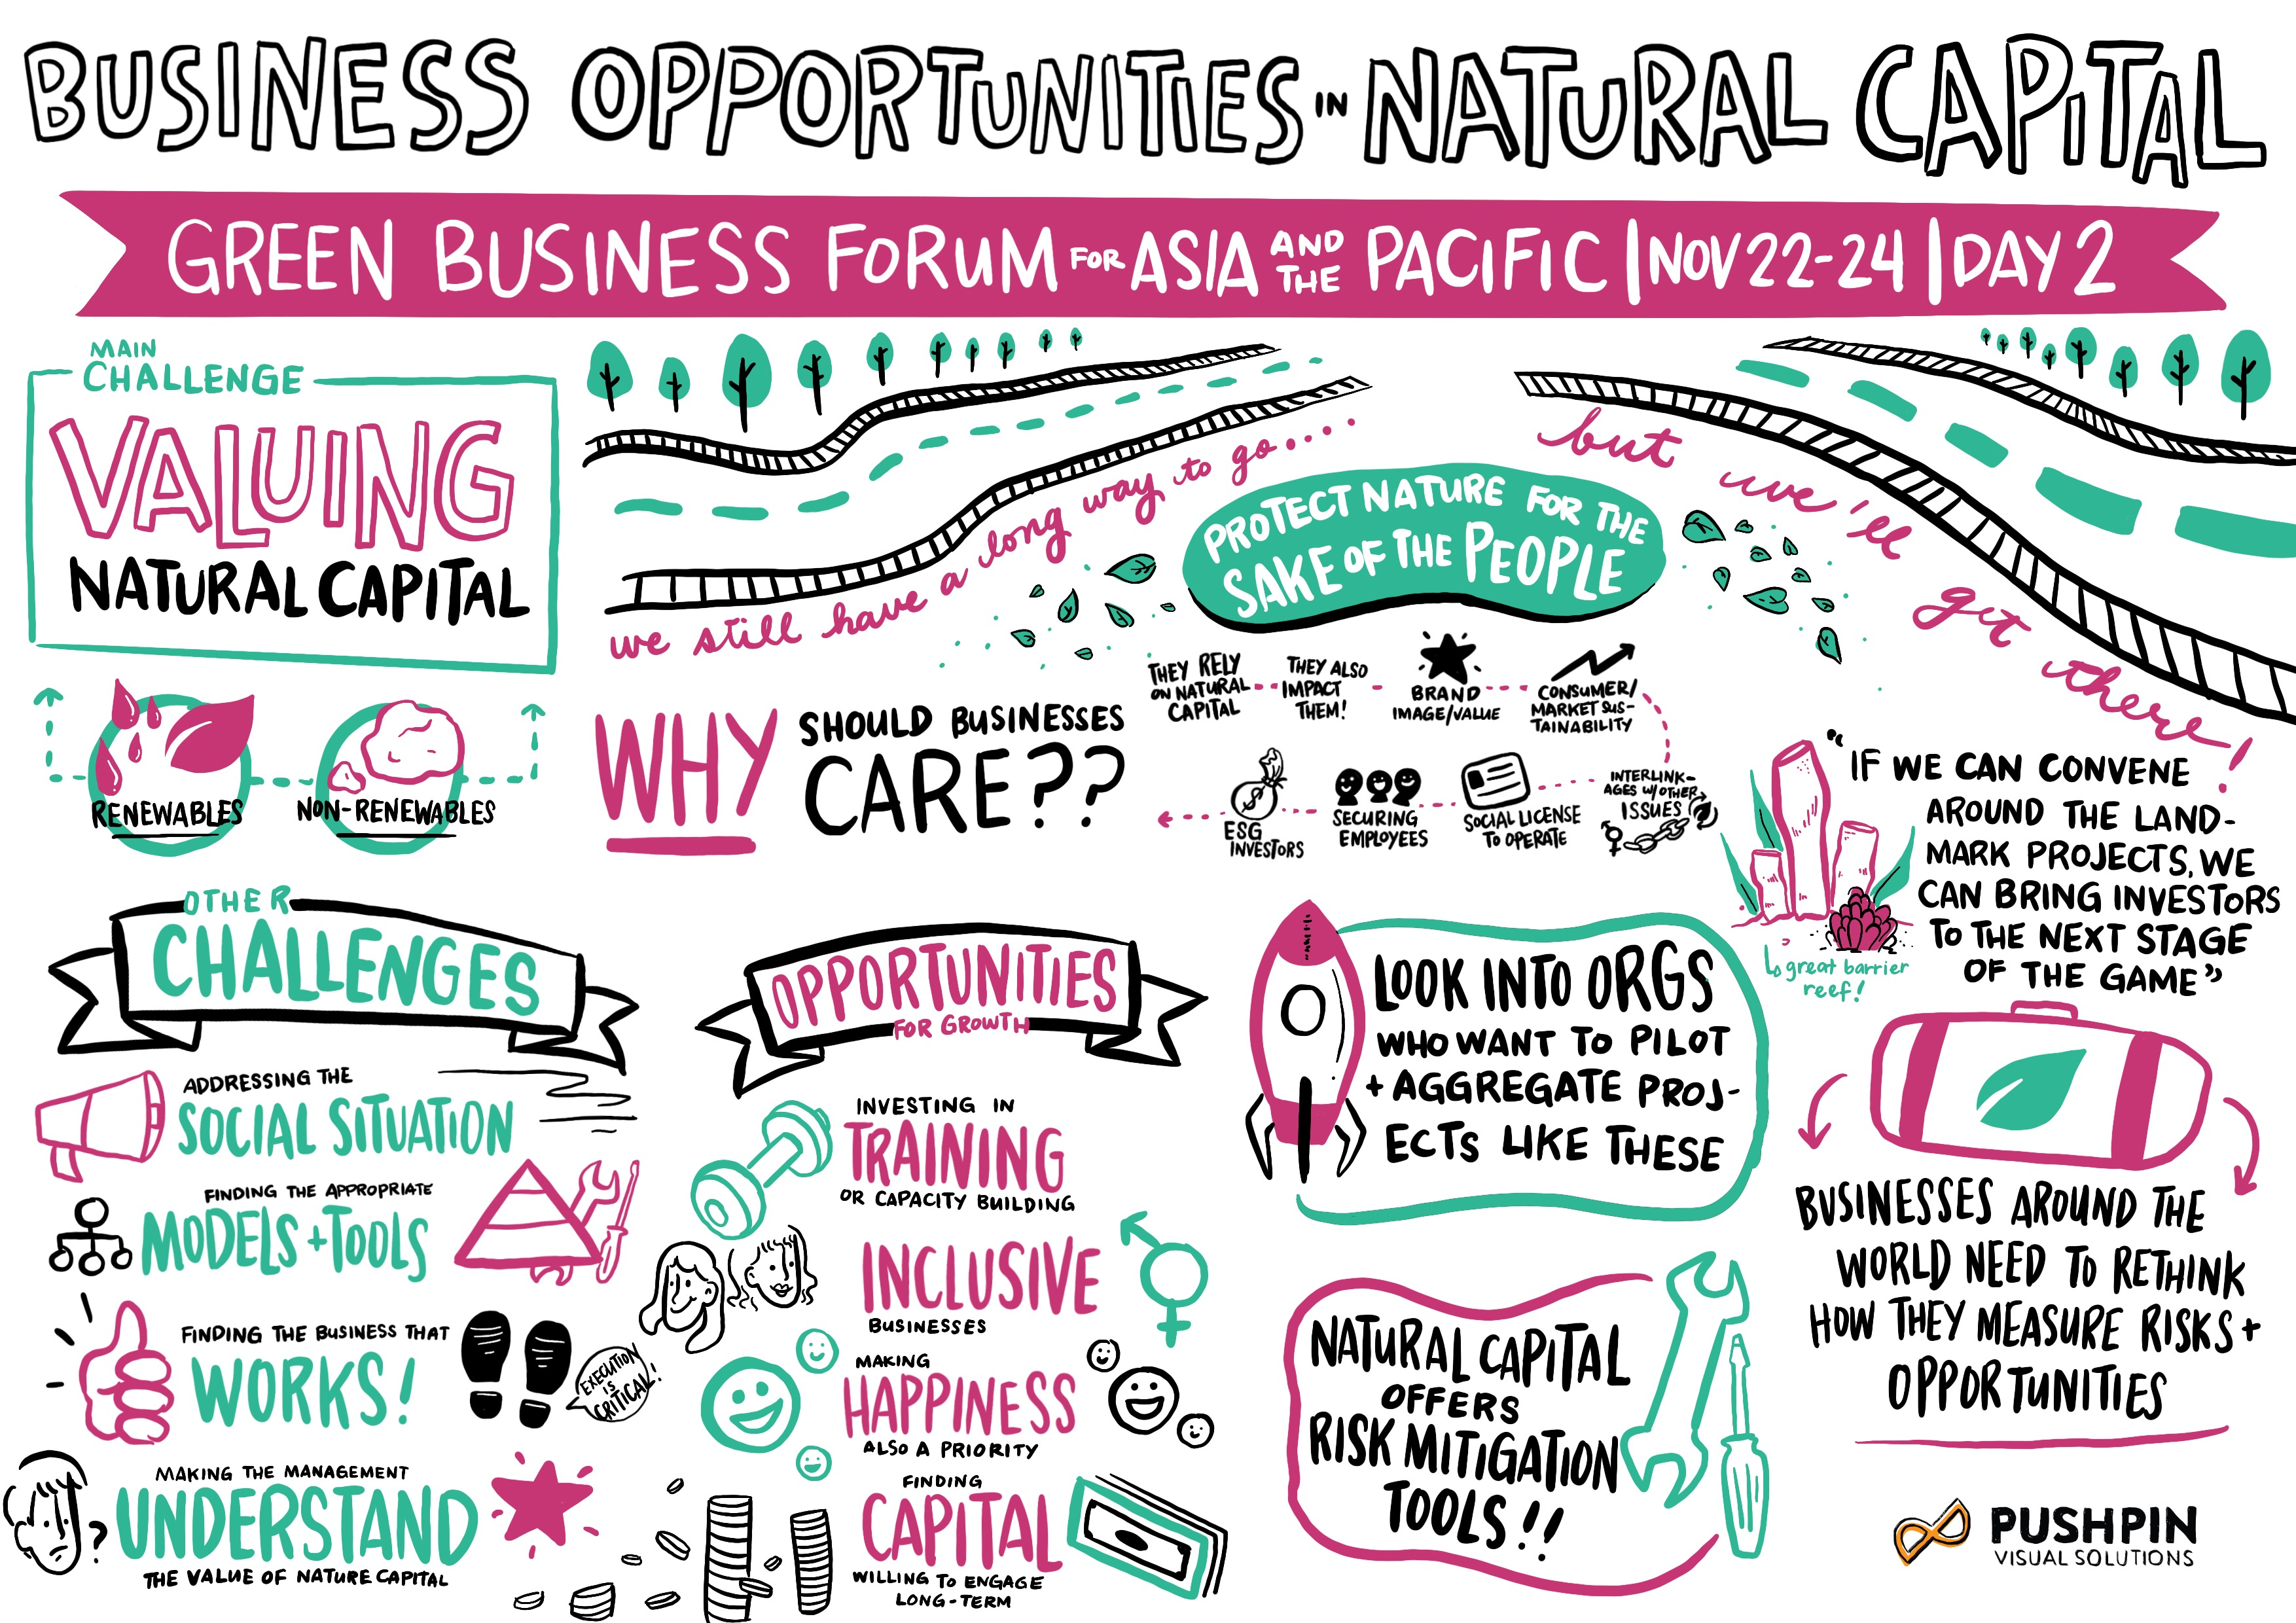 Business_Opportunities_in_Natural_Capital